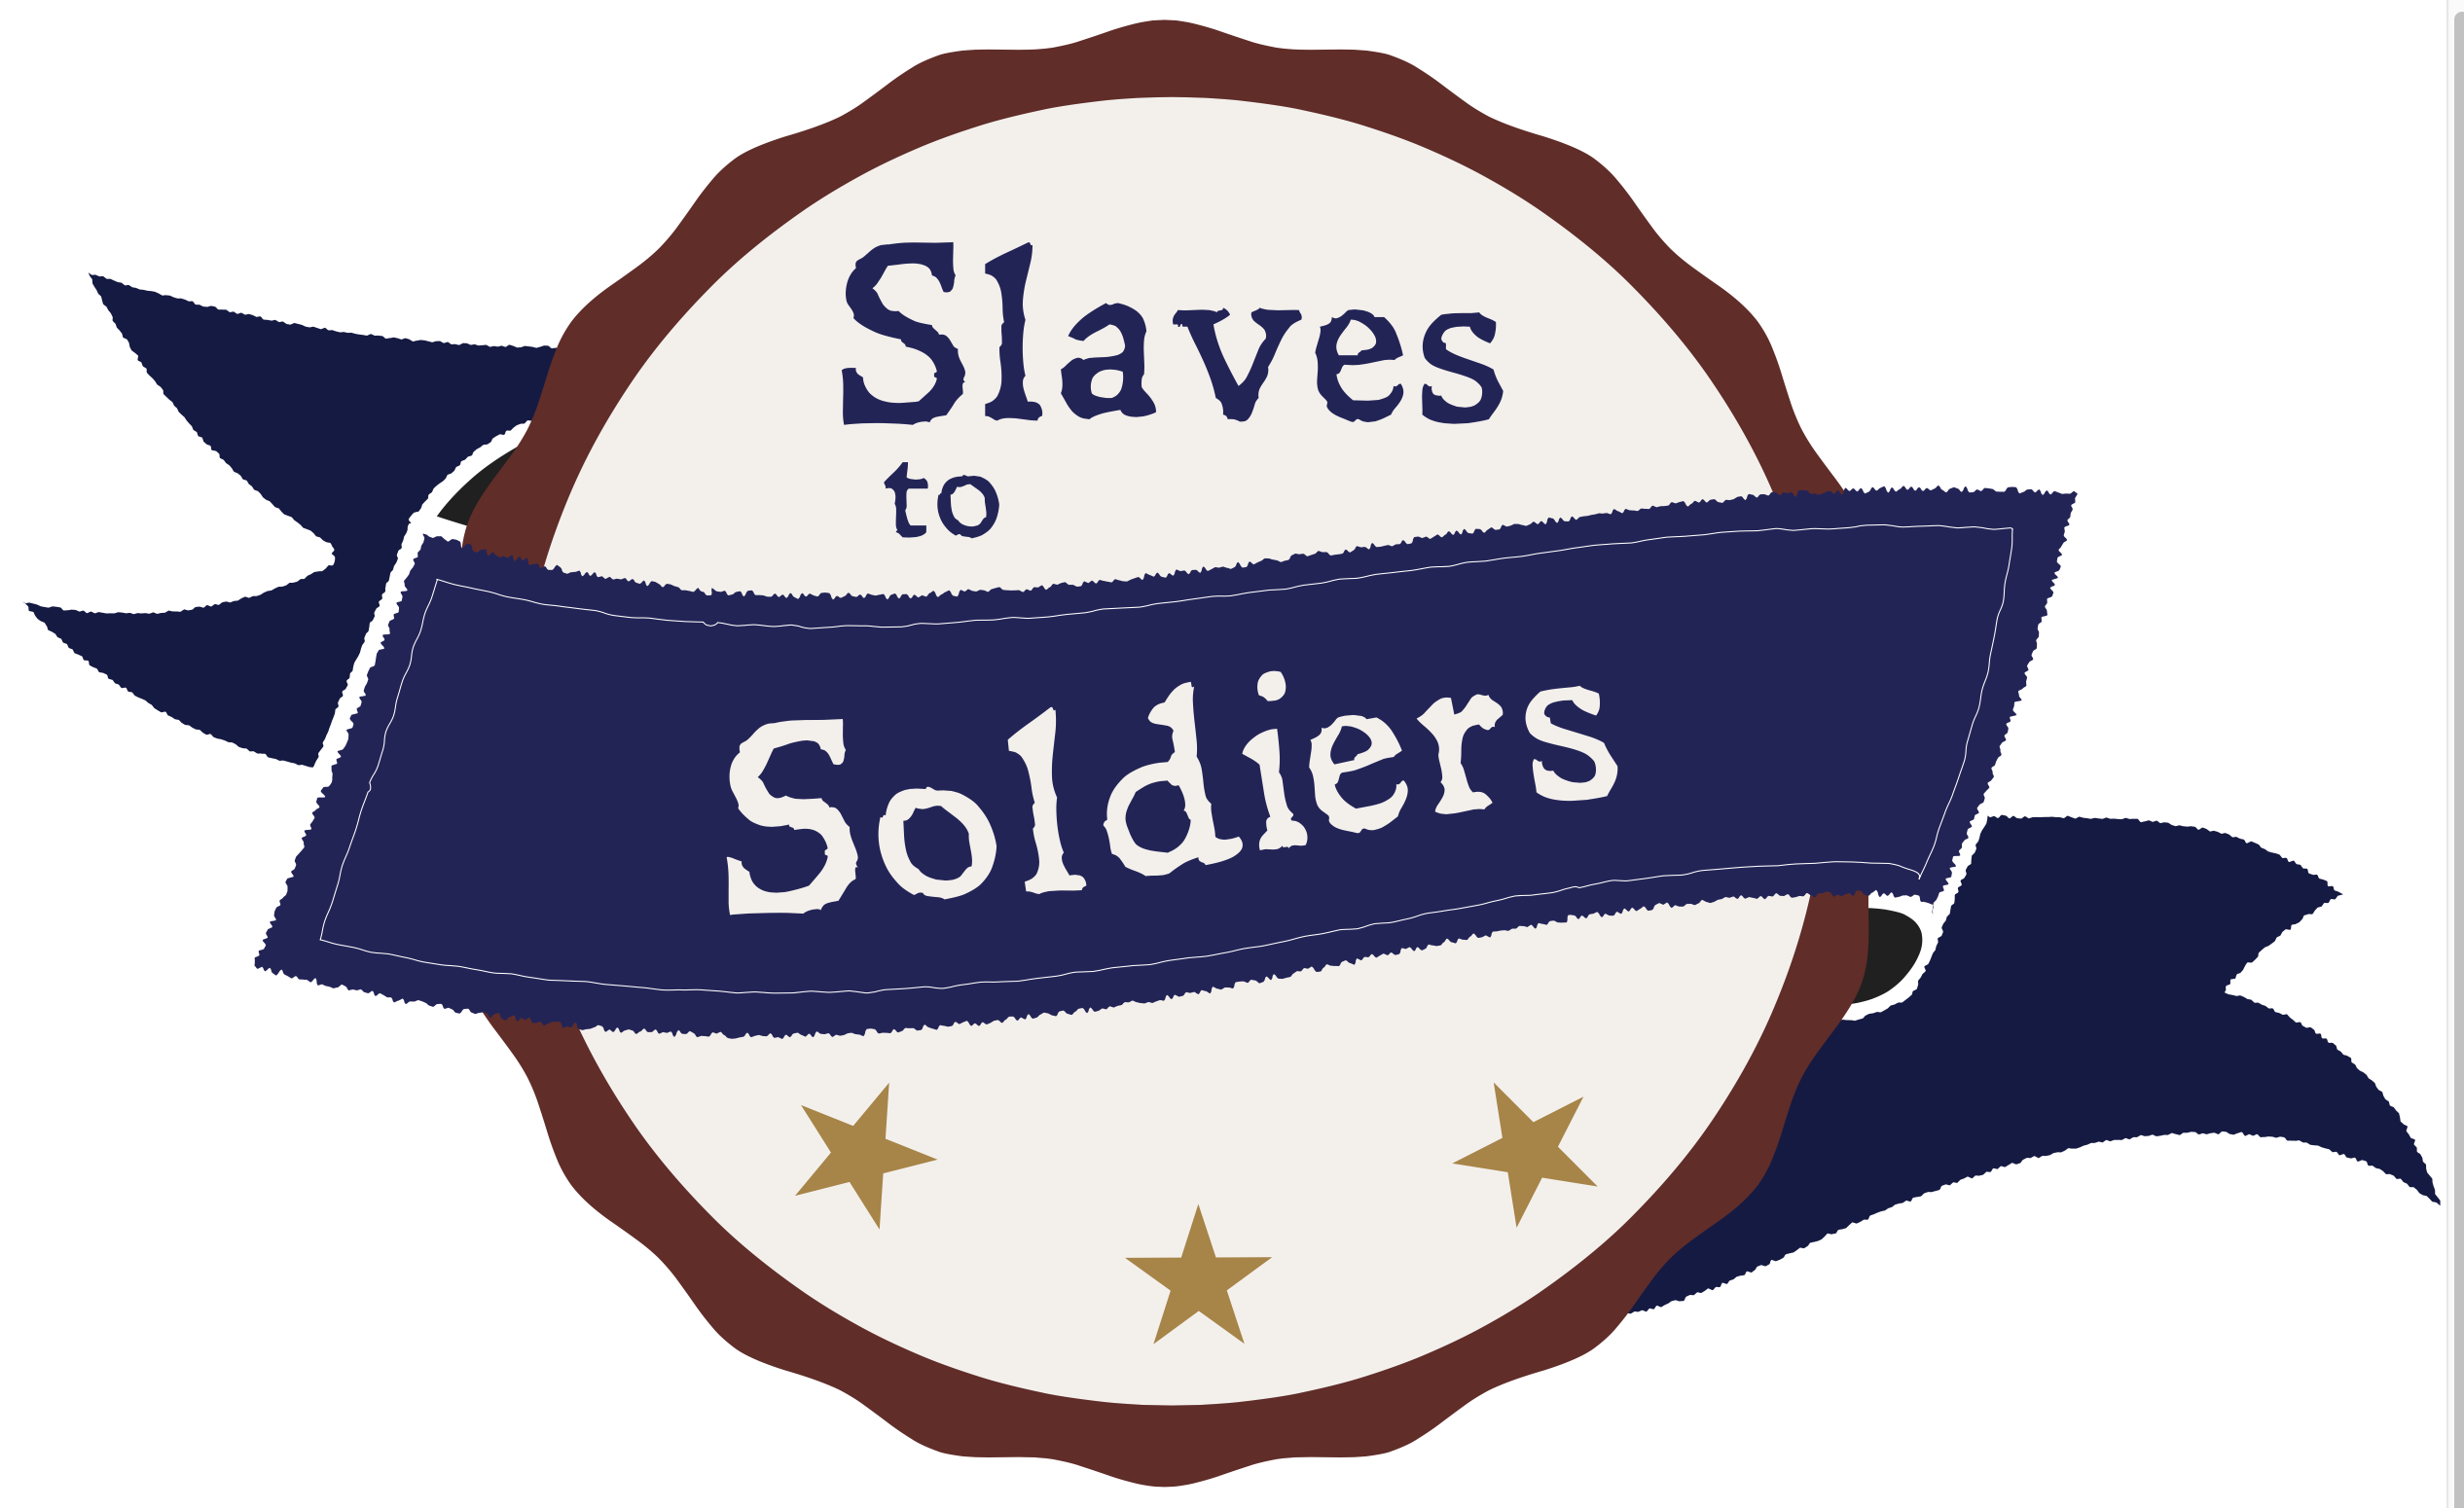 Slaves to Soldiers